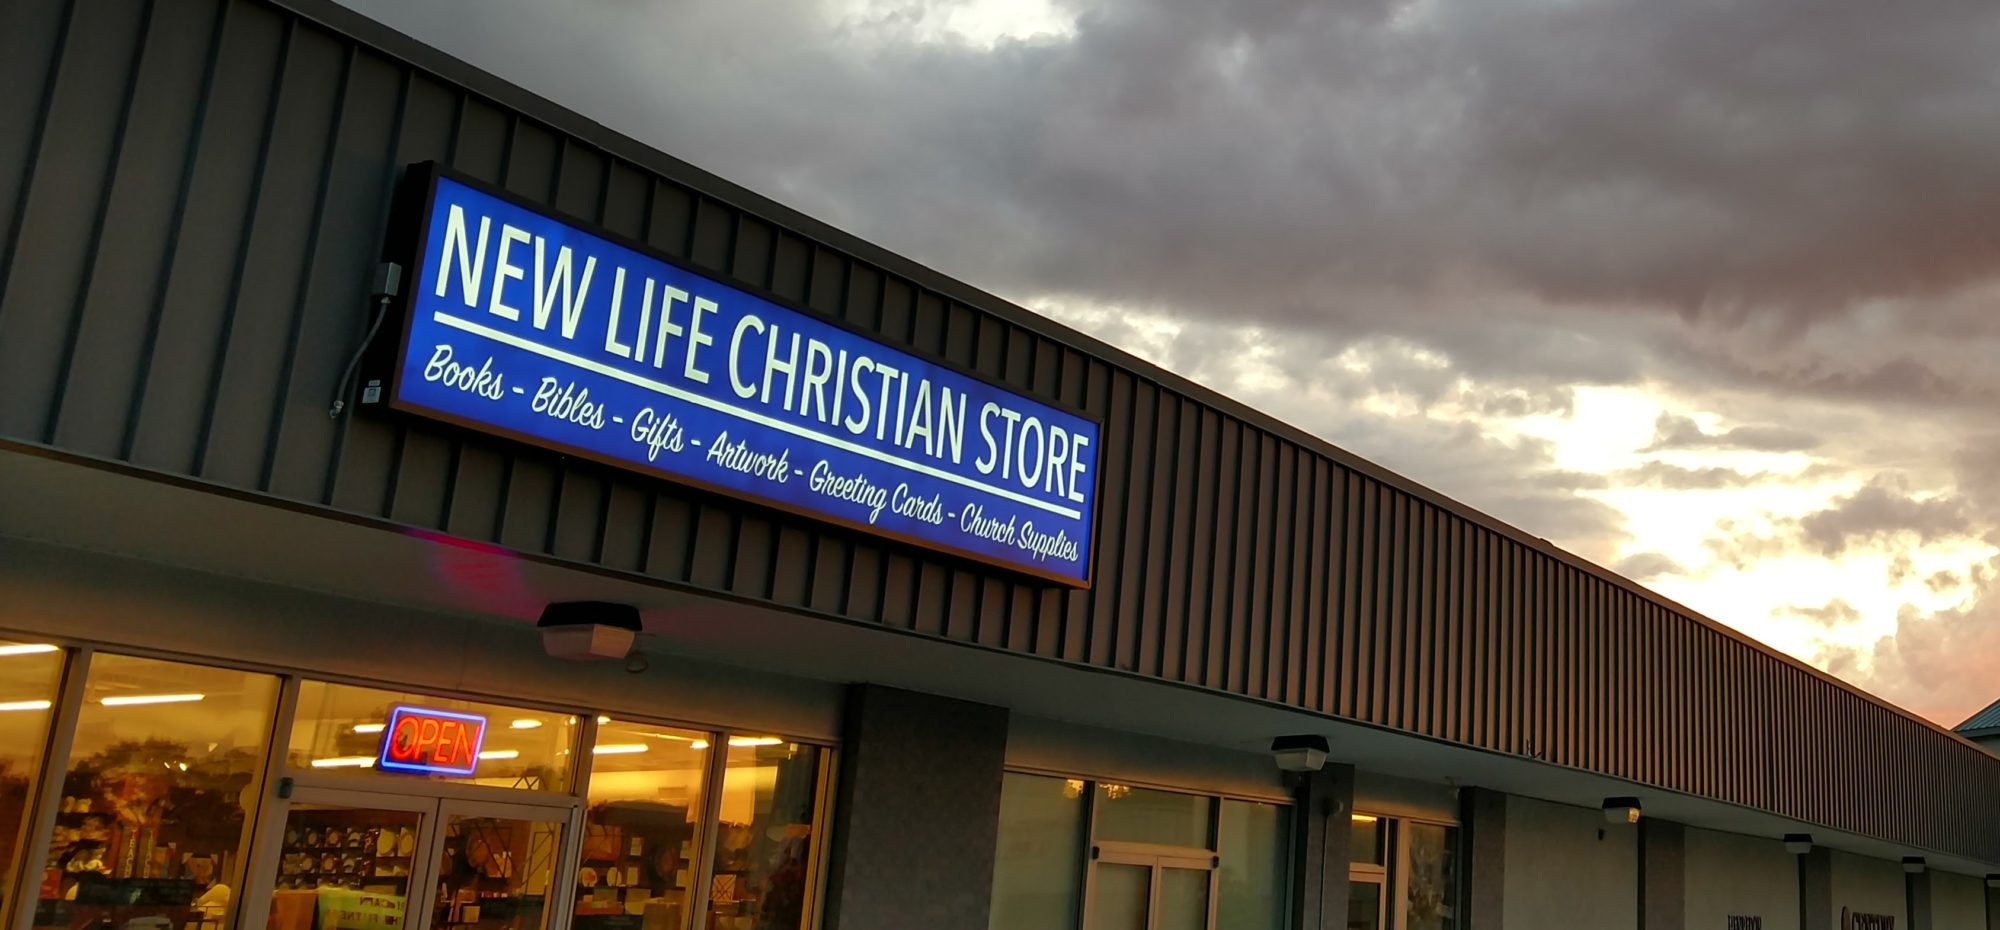 New life christian book store serving new york city and rhode island new life christian store serving nyc and ri m4hsunfo